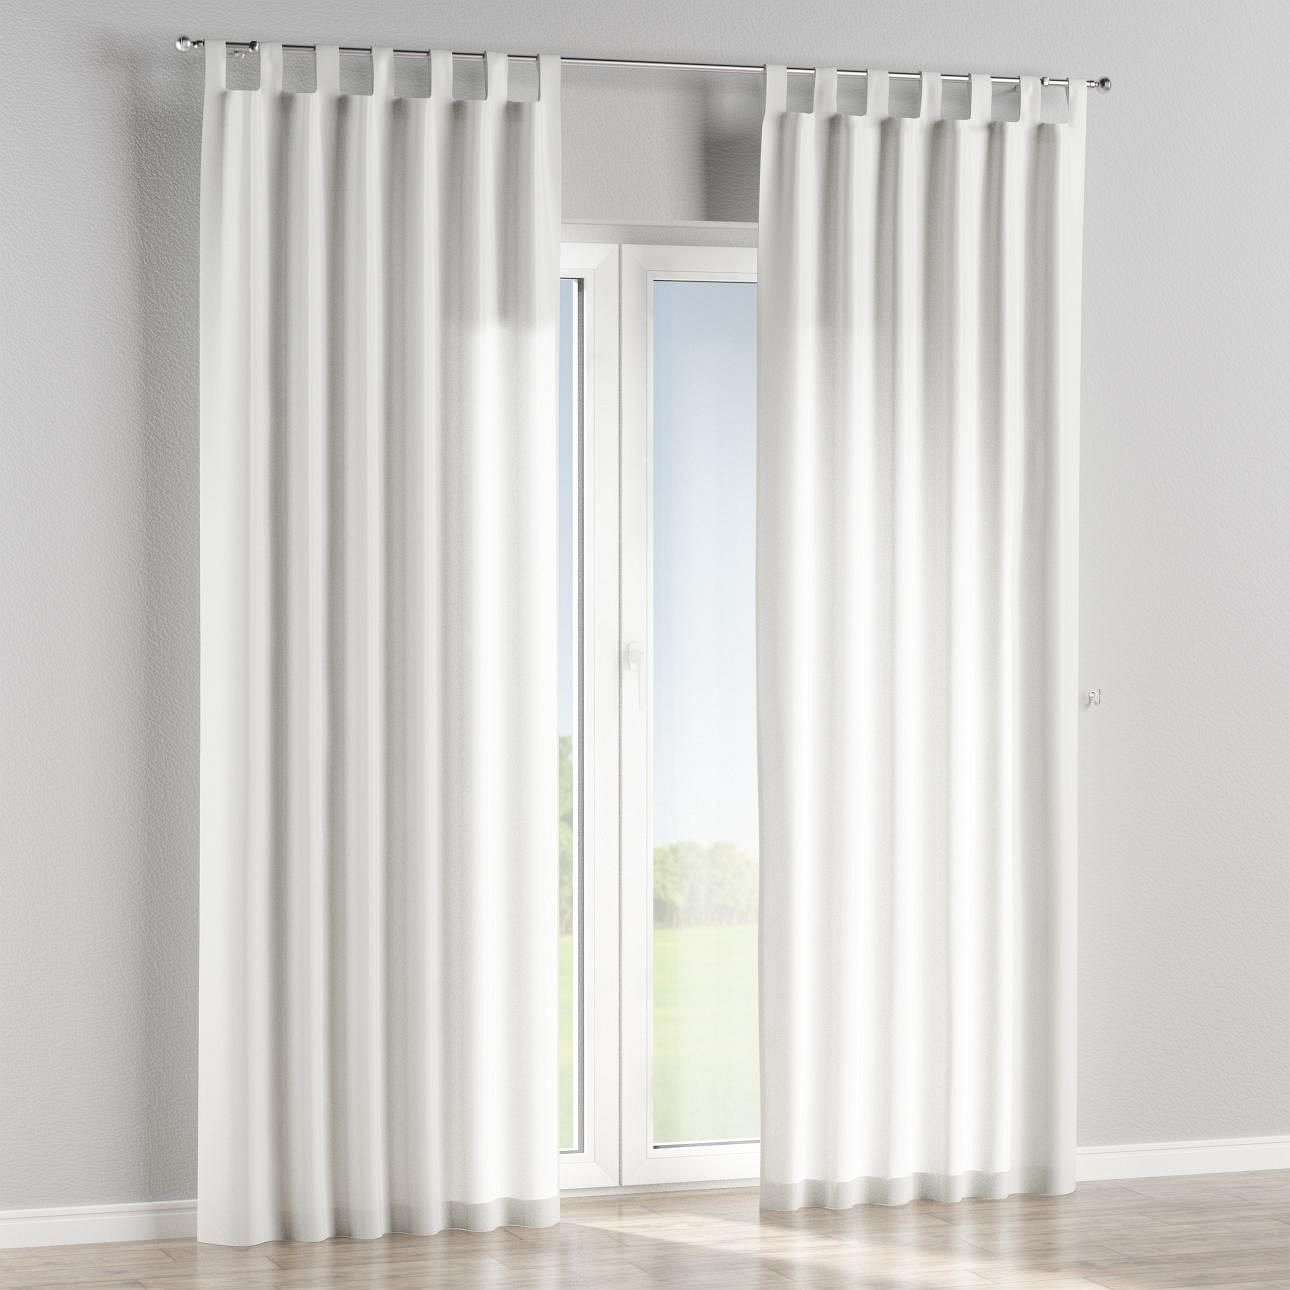 Tab top curtains in collection Milano, fabric: 150-23